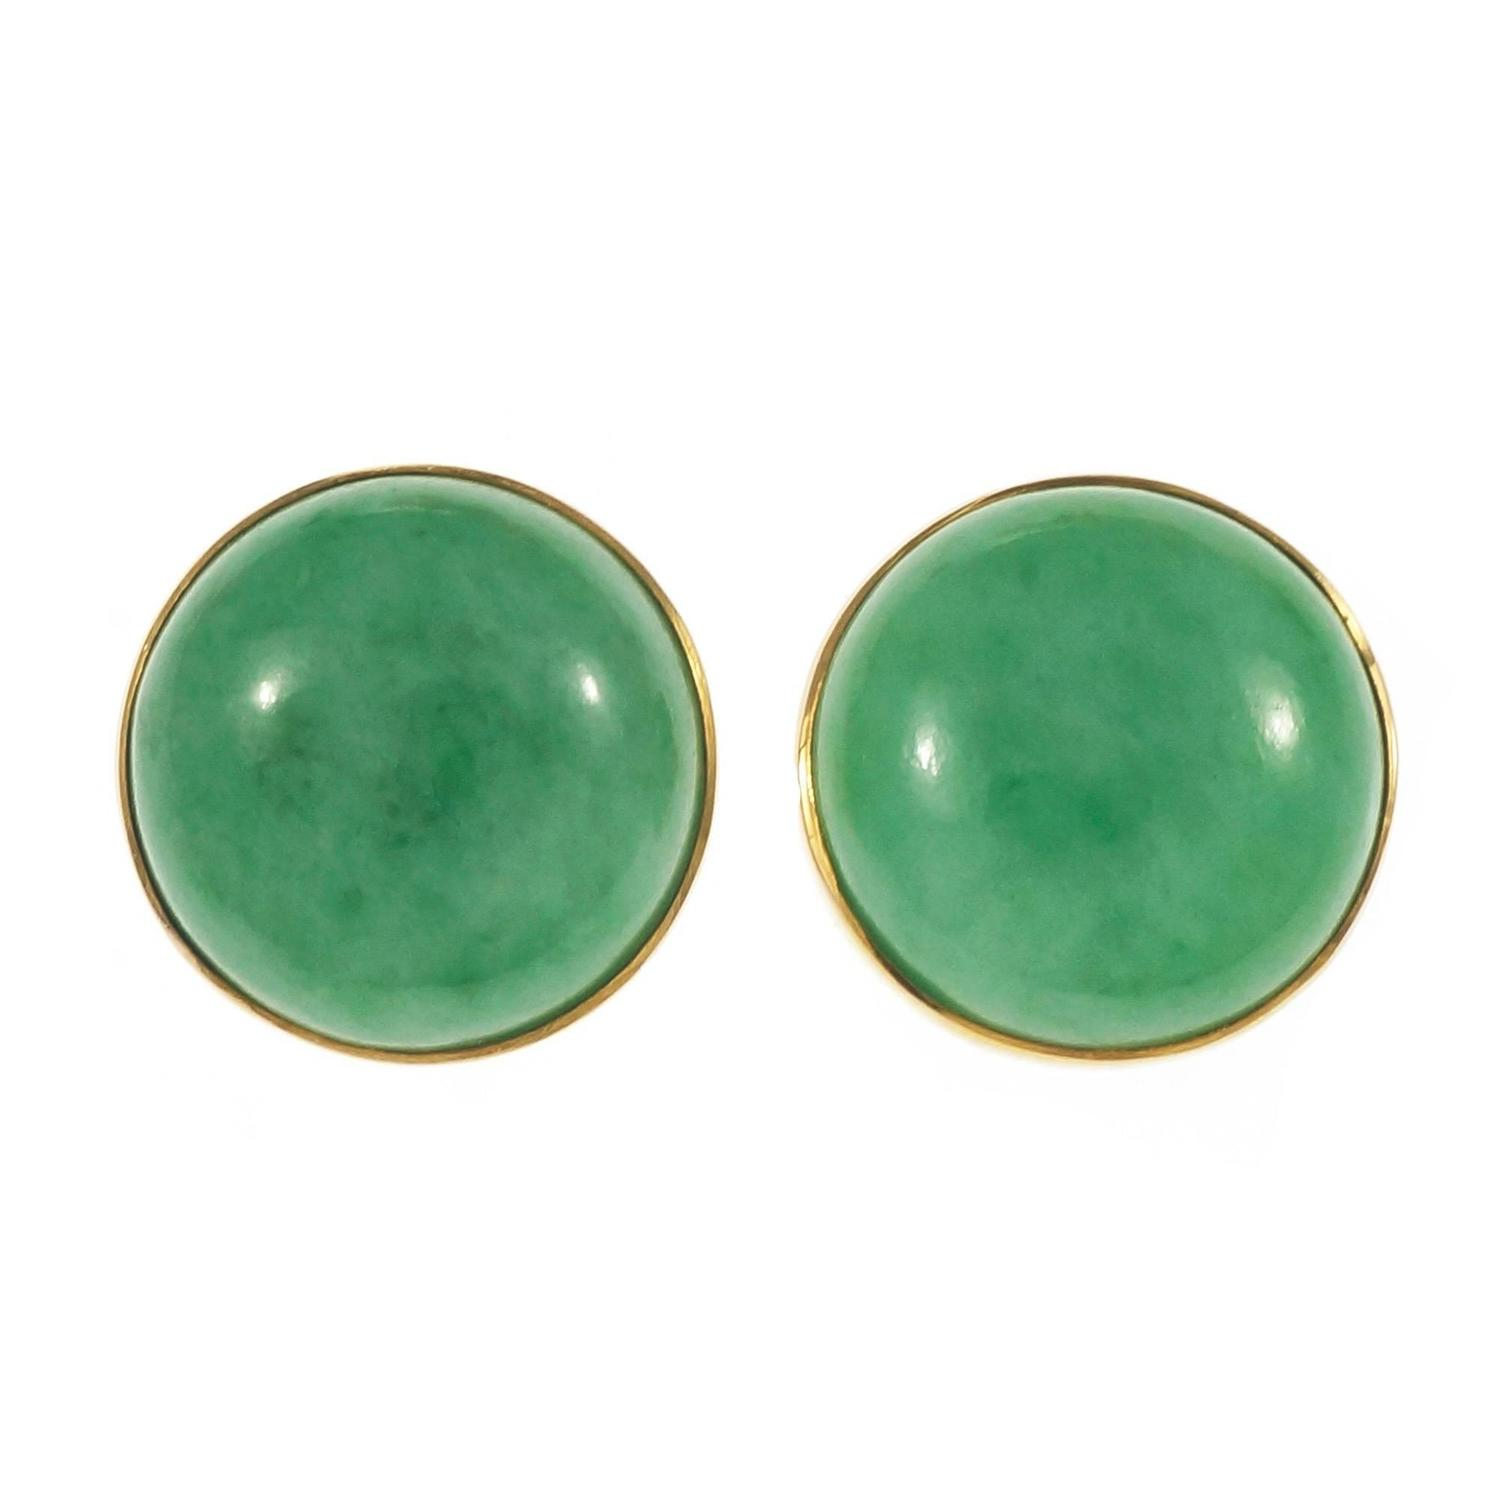 Yafa signed jewels new york ny 1stdibs page 4 - Gia Certified Natural Round Jadeite Jade Round Gold Earrings